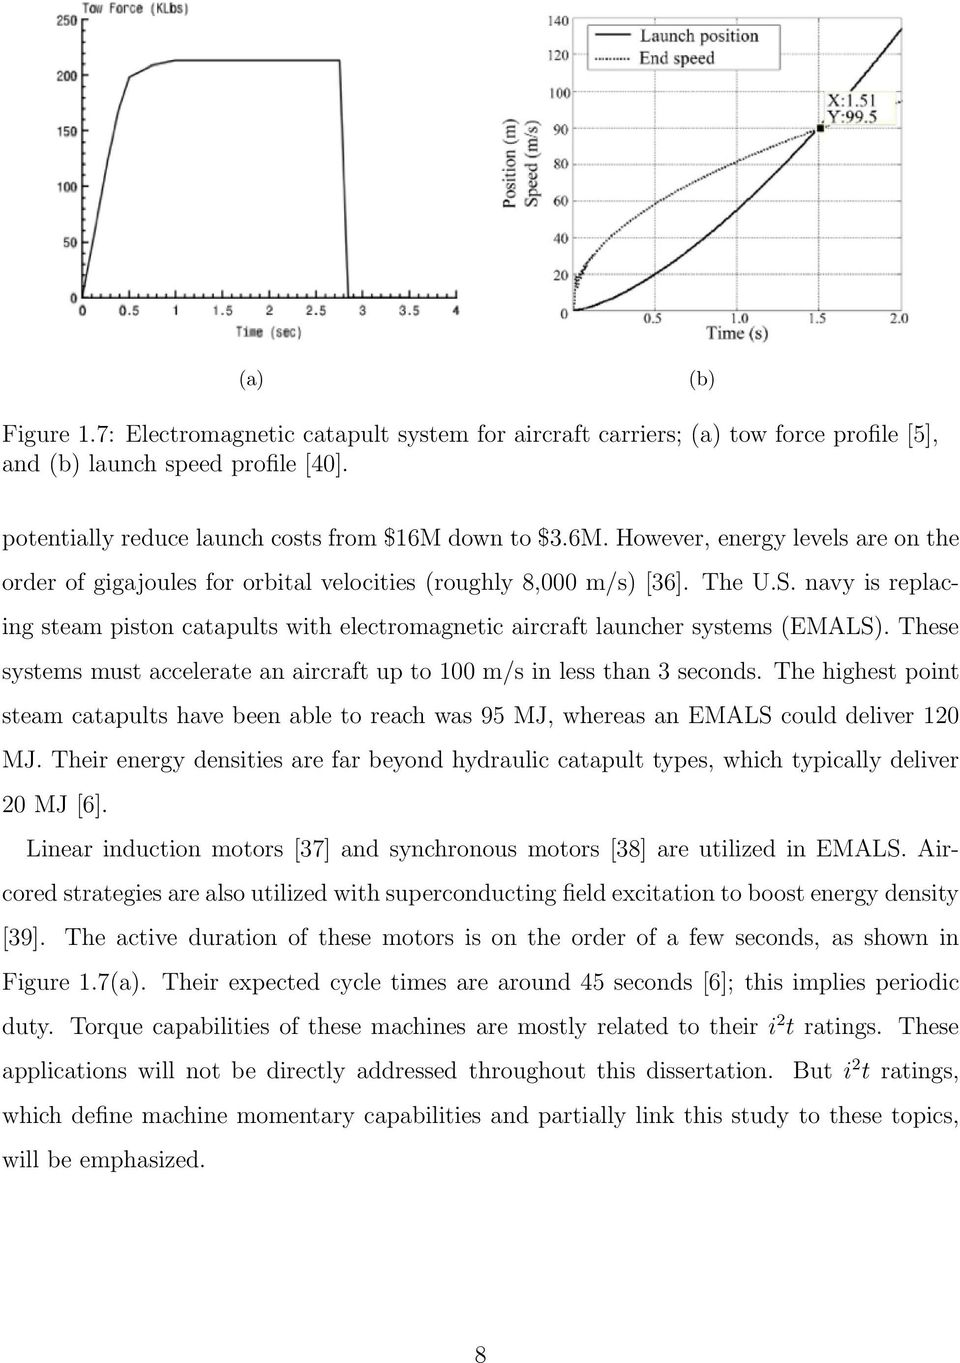 Phd Thesis Electrical Power System